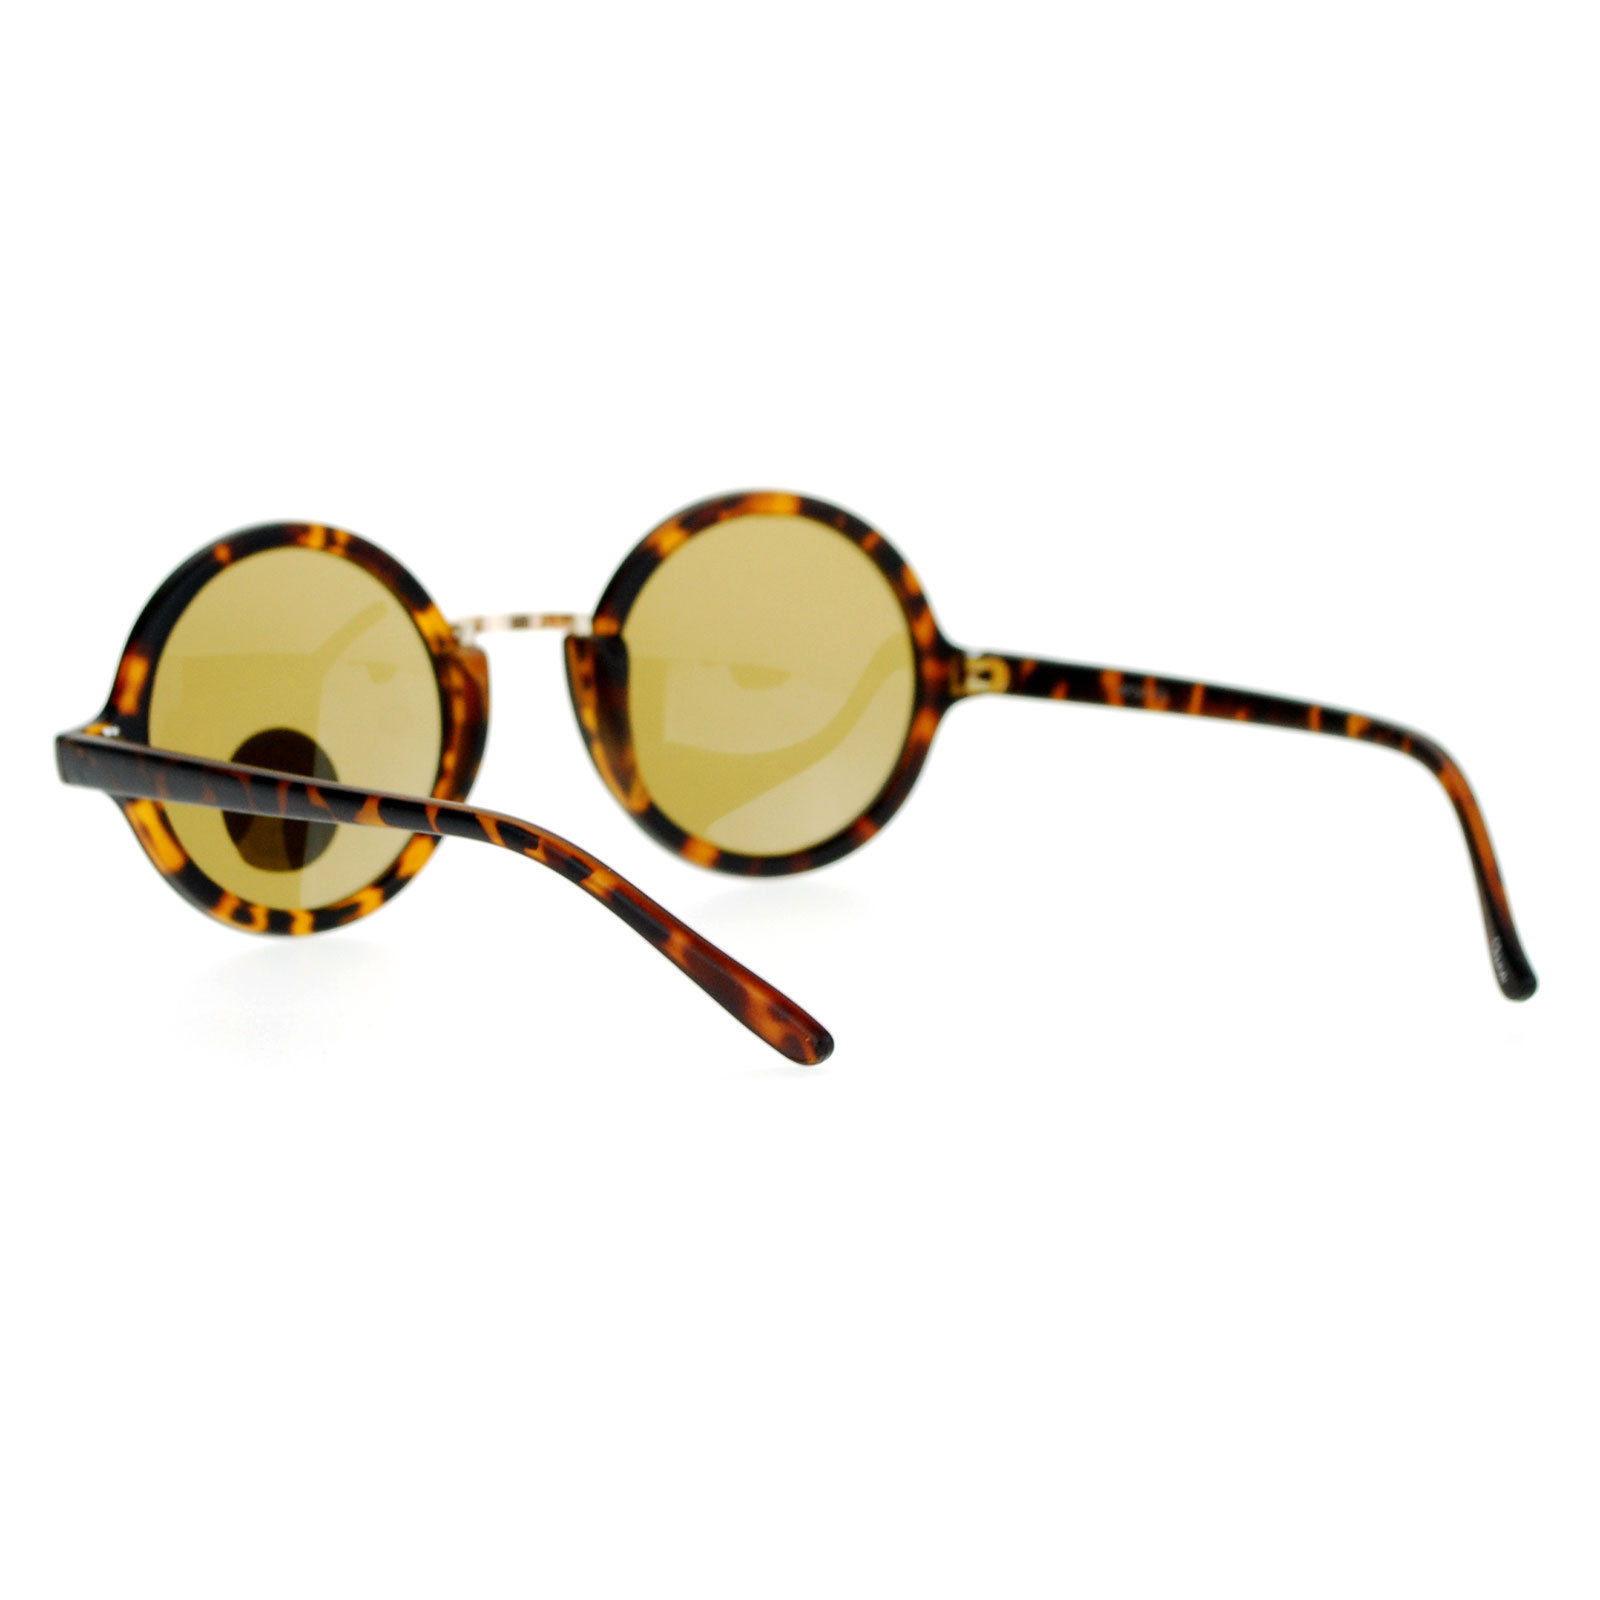 Glass Lens Sunglasses Vintage Designer Fashion Round Circle Frame